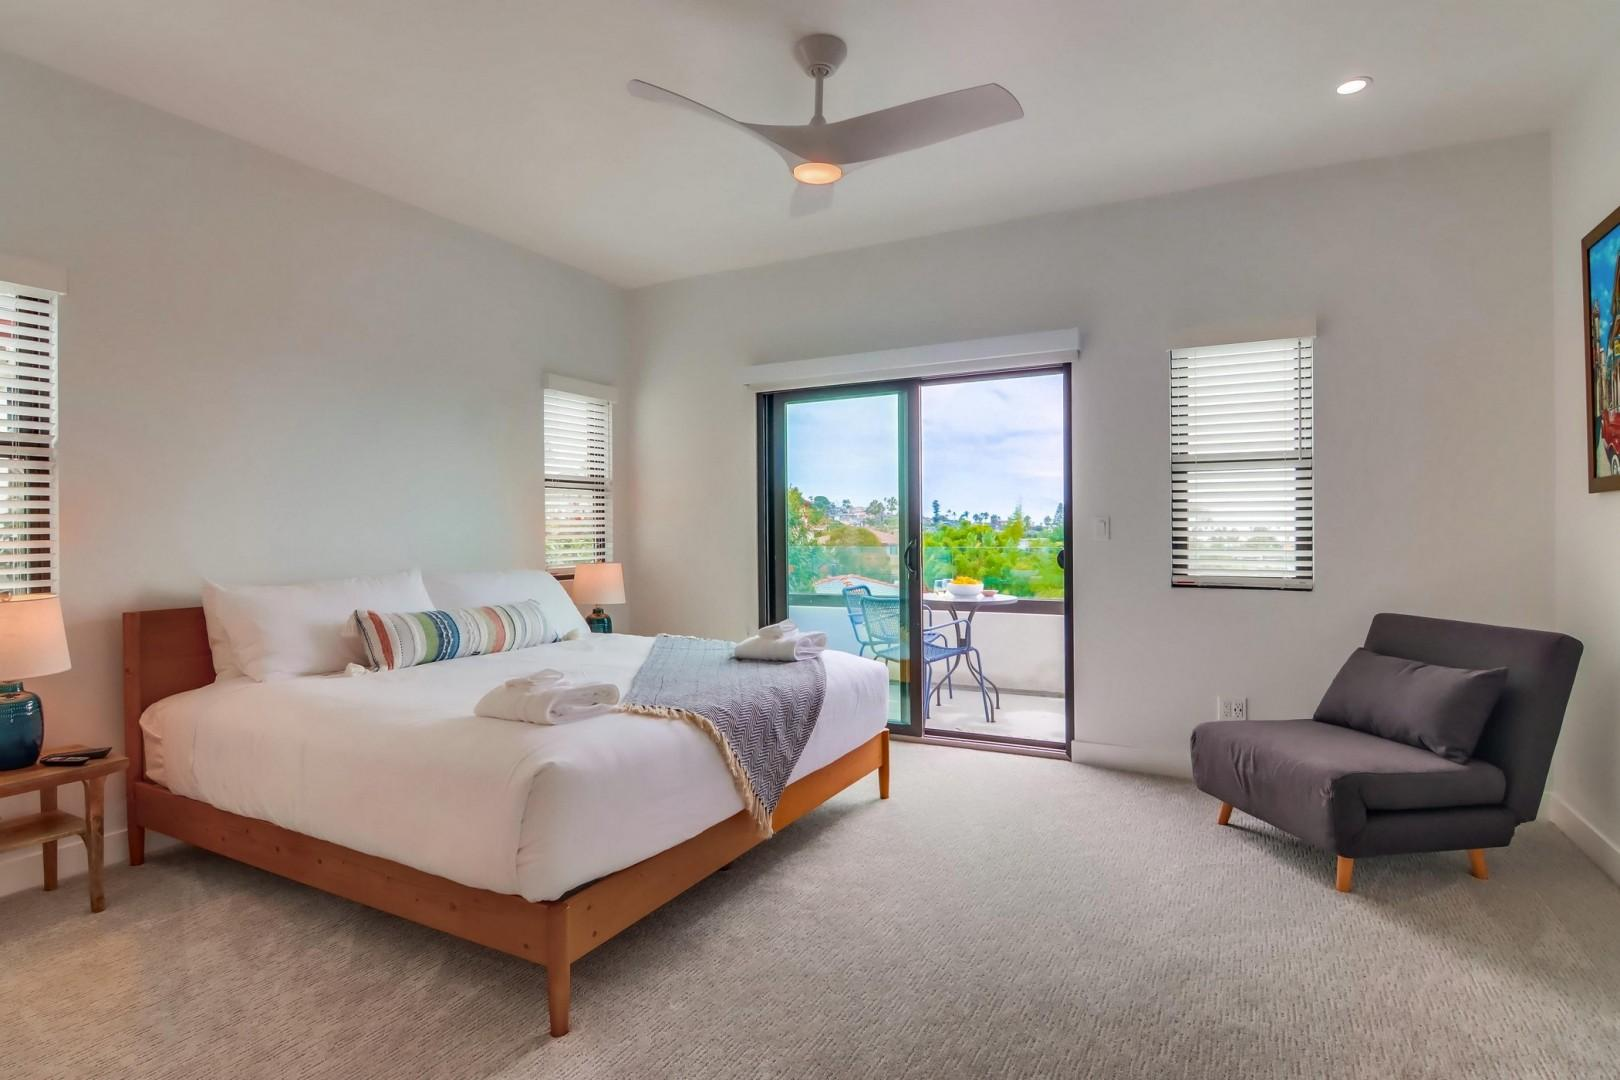 Bedroom suite 2 with view balcony